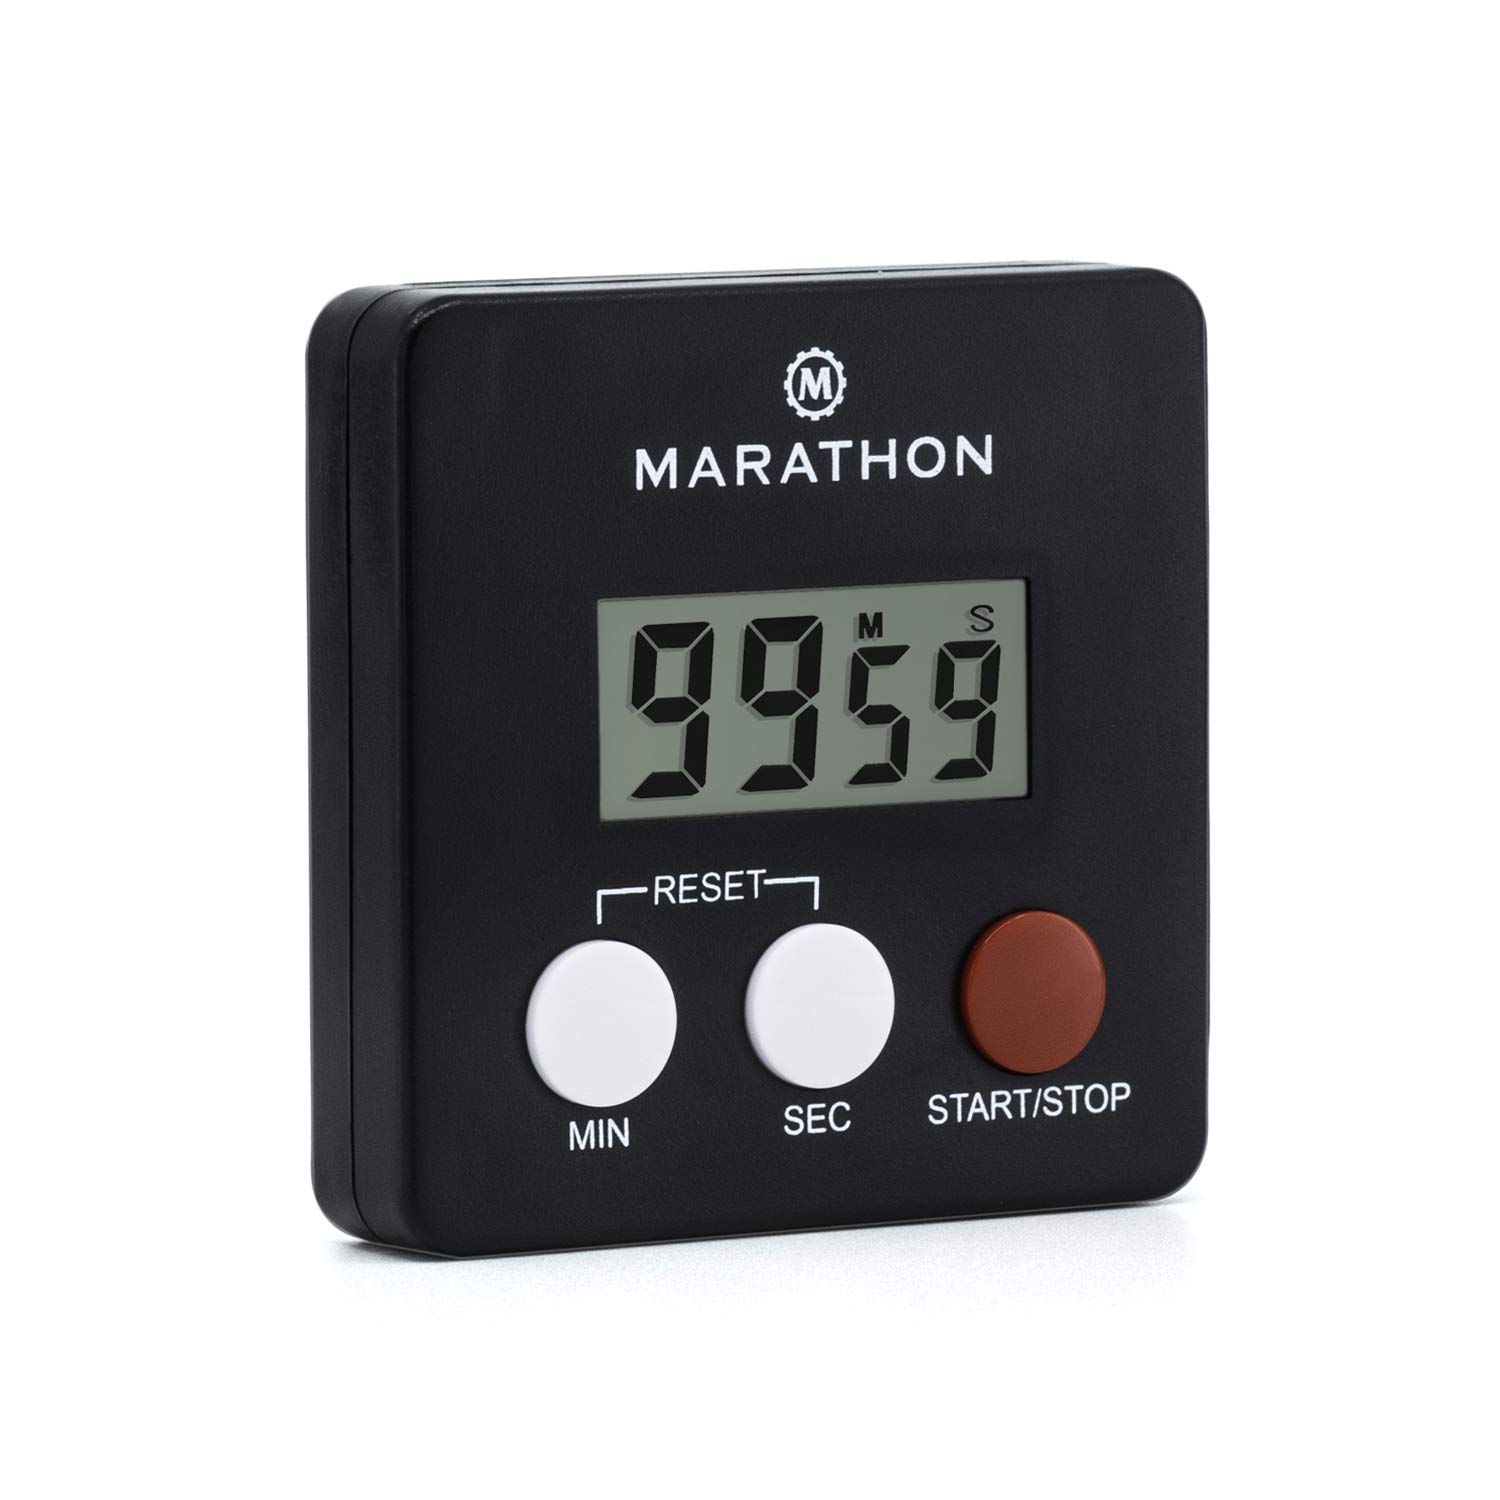 MARATHON TI080006-BK Digital Kitchen Timer with Big Digits, Loud Alarm, Magnetic Back with Clip and Stand-Black, Batteries Included TI080006BK